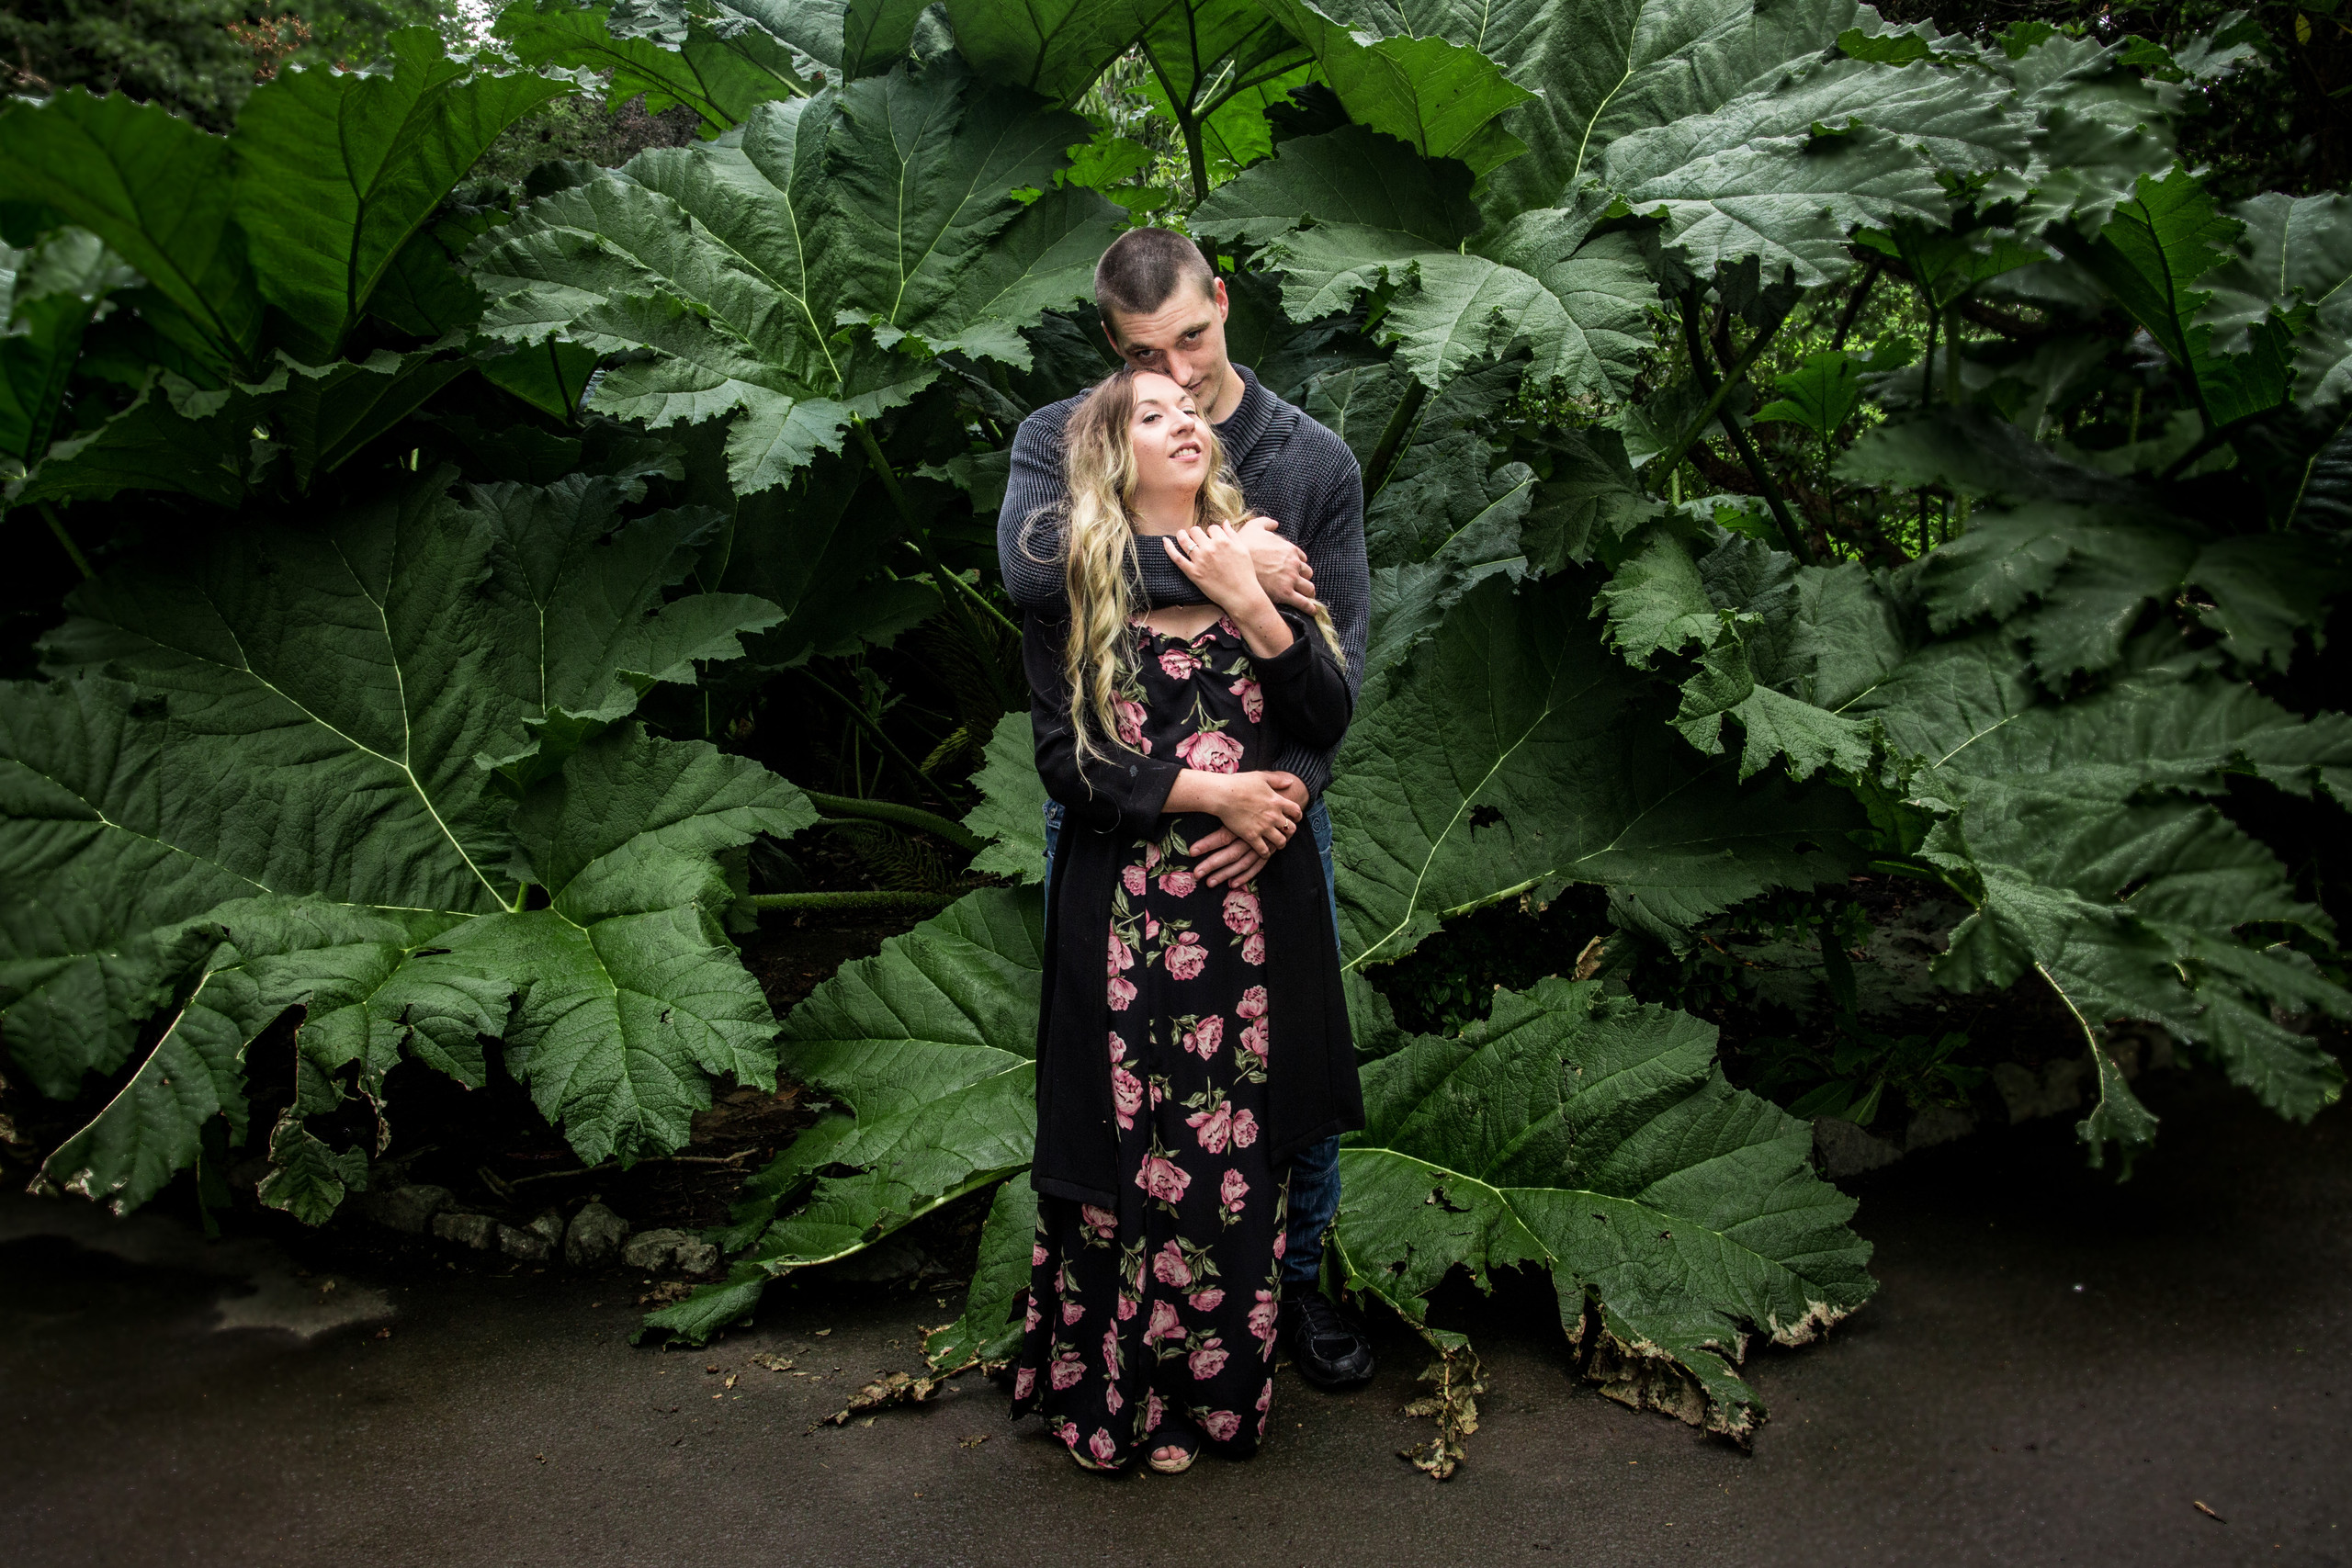 Engagement Photography at Clyne Gardens Swansea